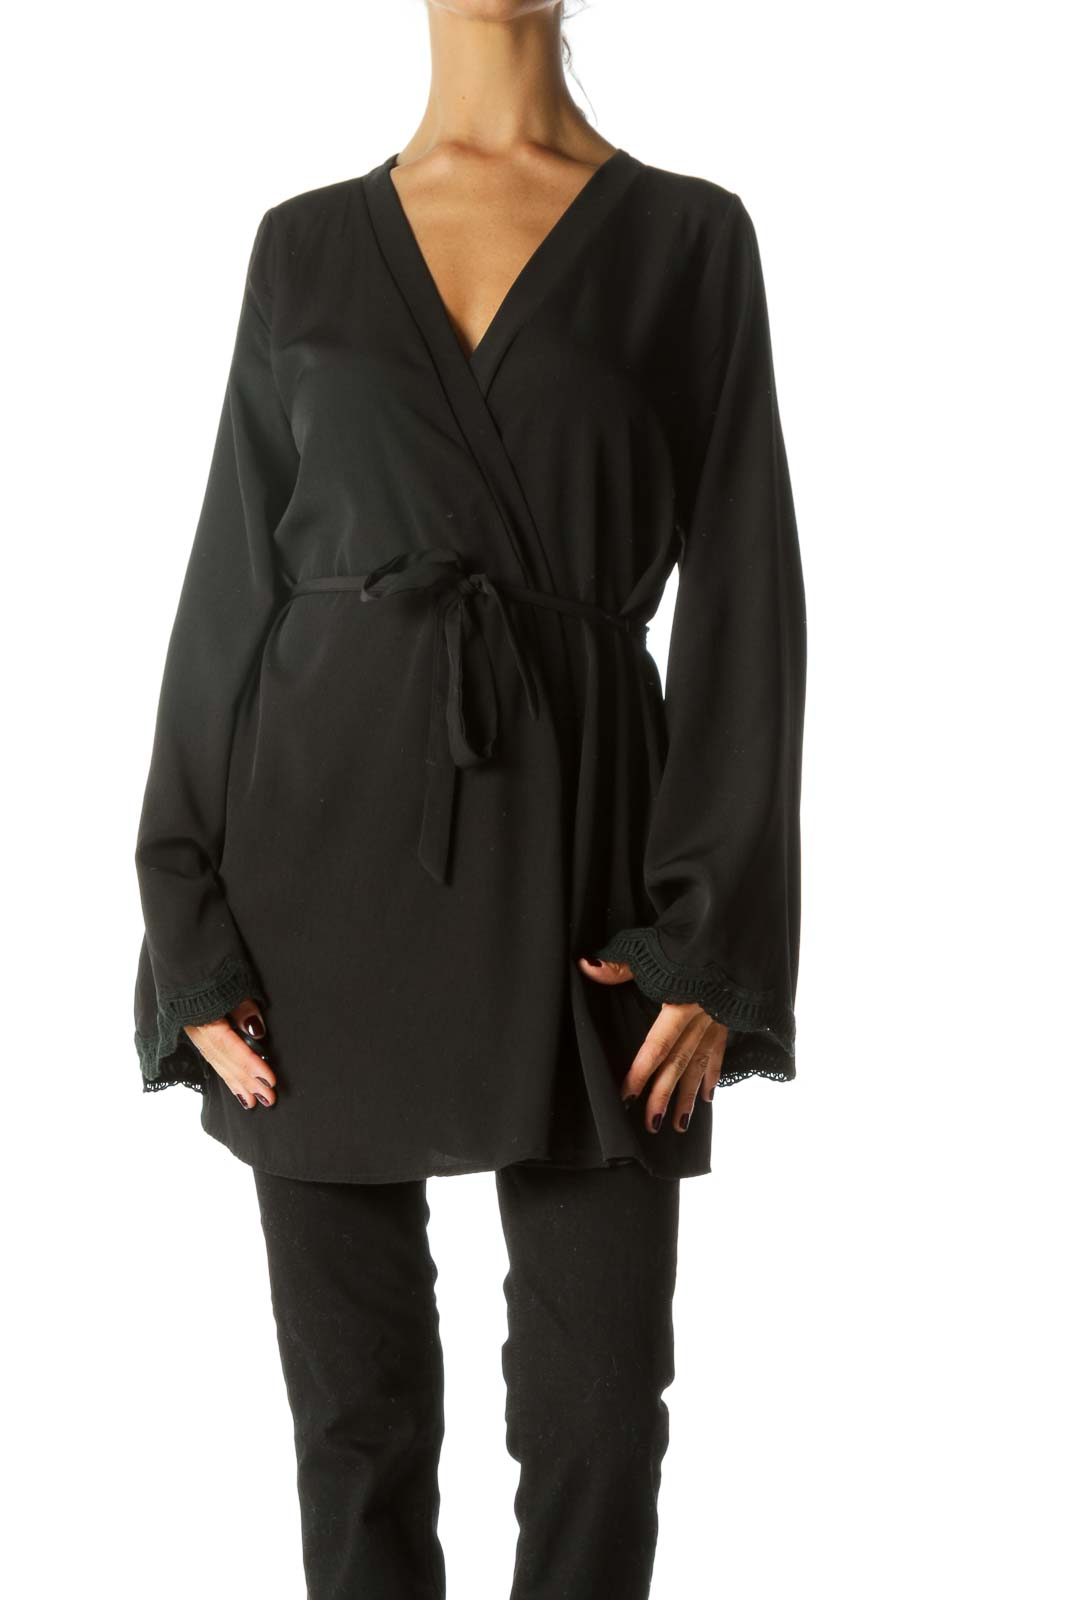 Black Belted Knit Sleeves Trimming Light Cardigan Front